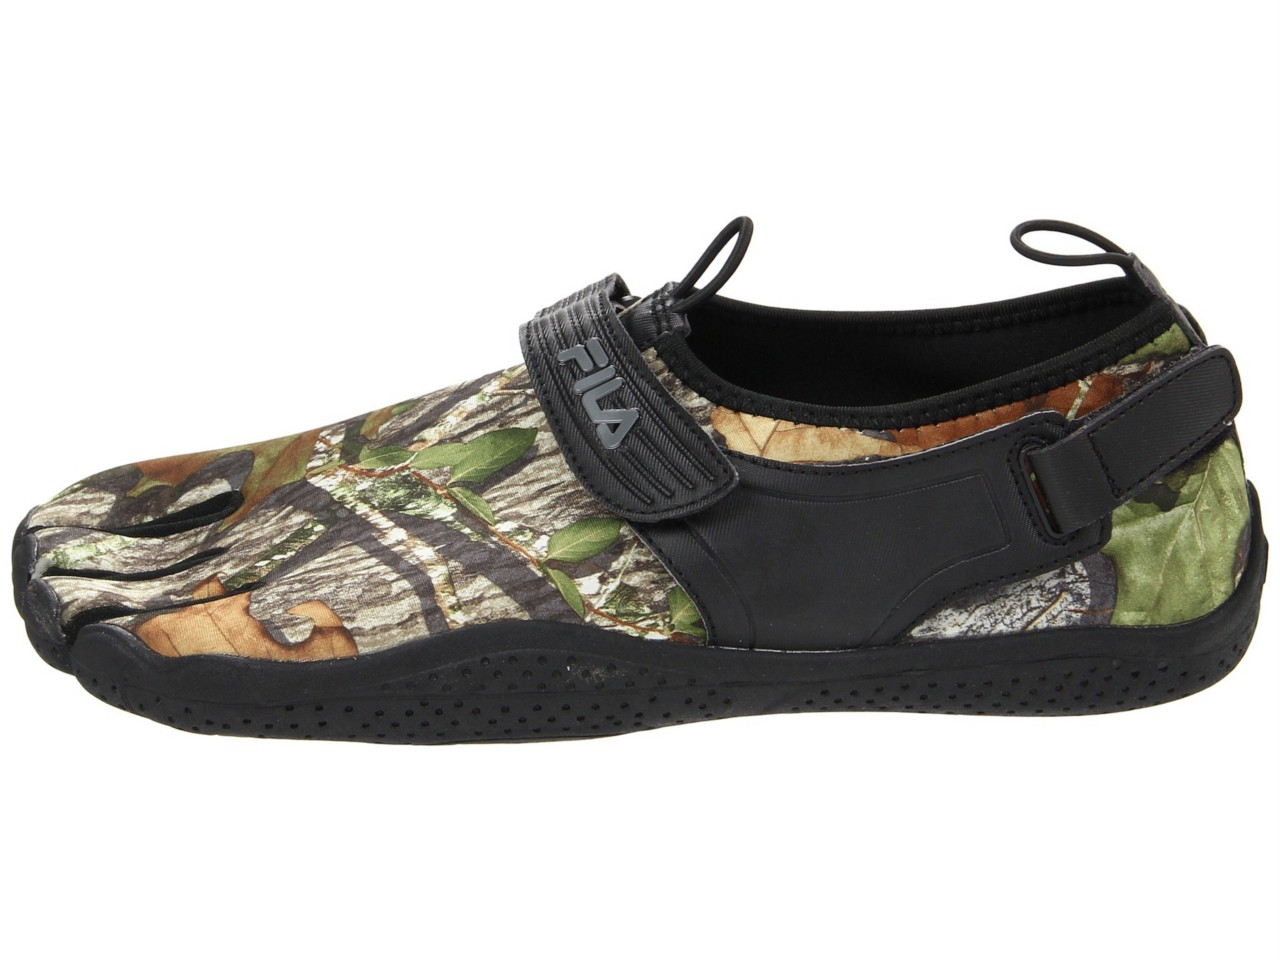 Fila Men S Skele Toes Camo Water Running Shoes Obsession